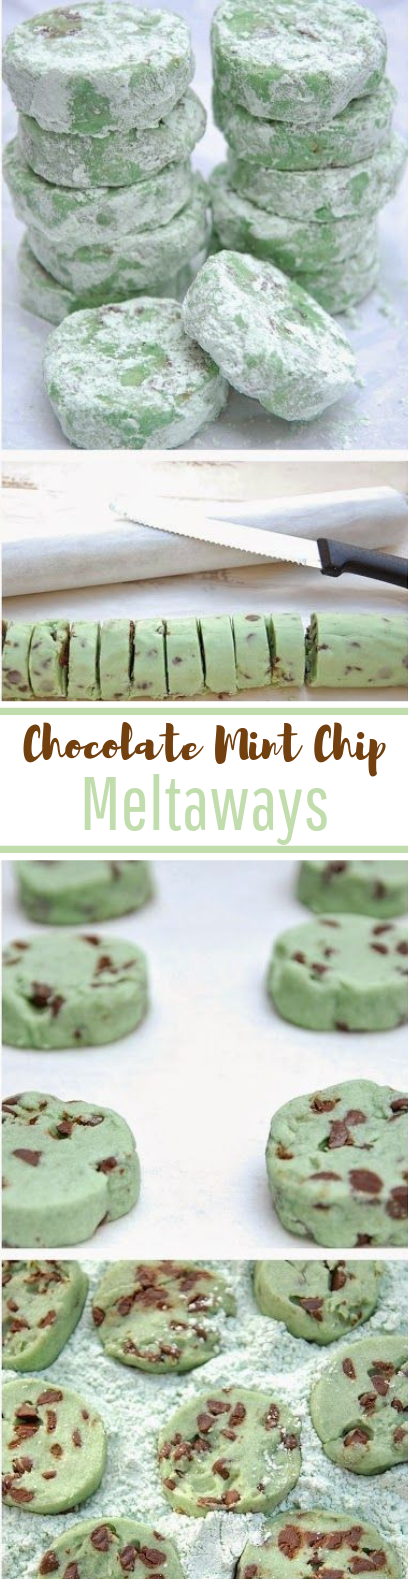 Chocolate Mint Chip Meltaways #holidaydessert #cookies